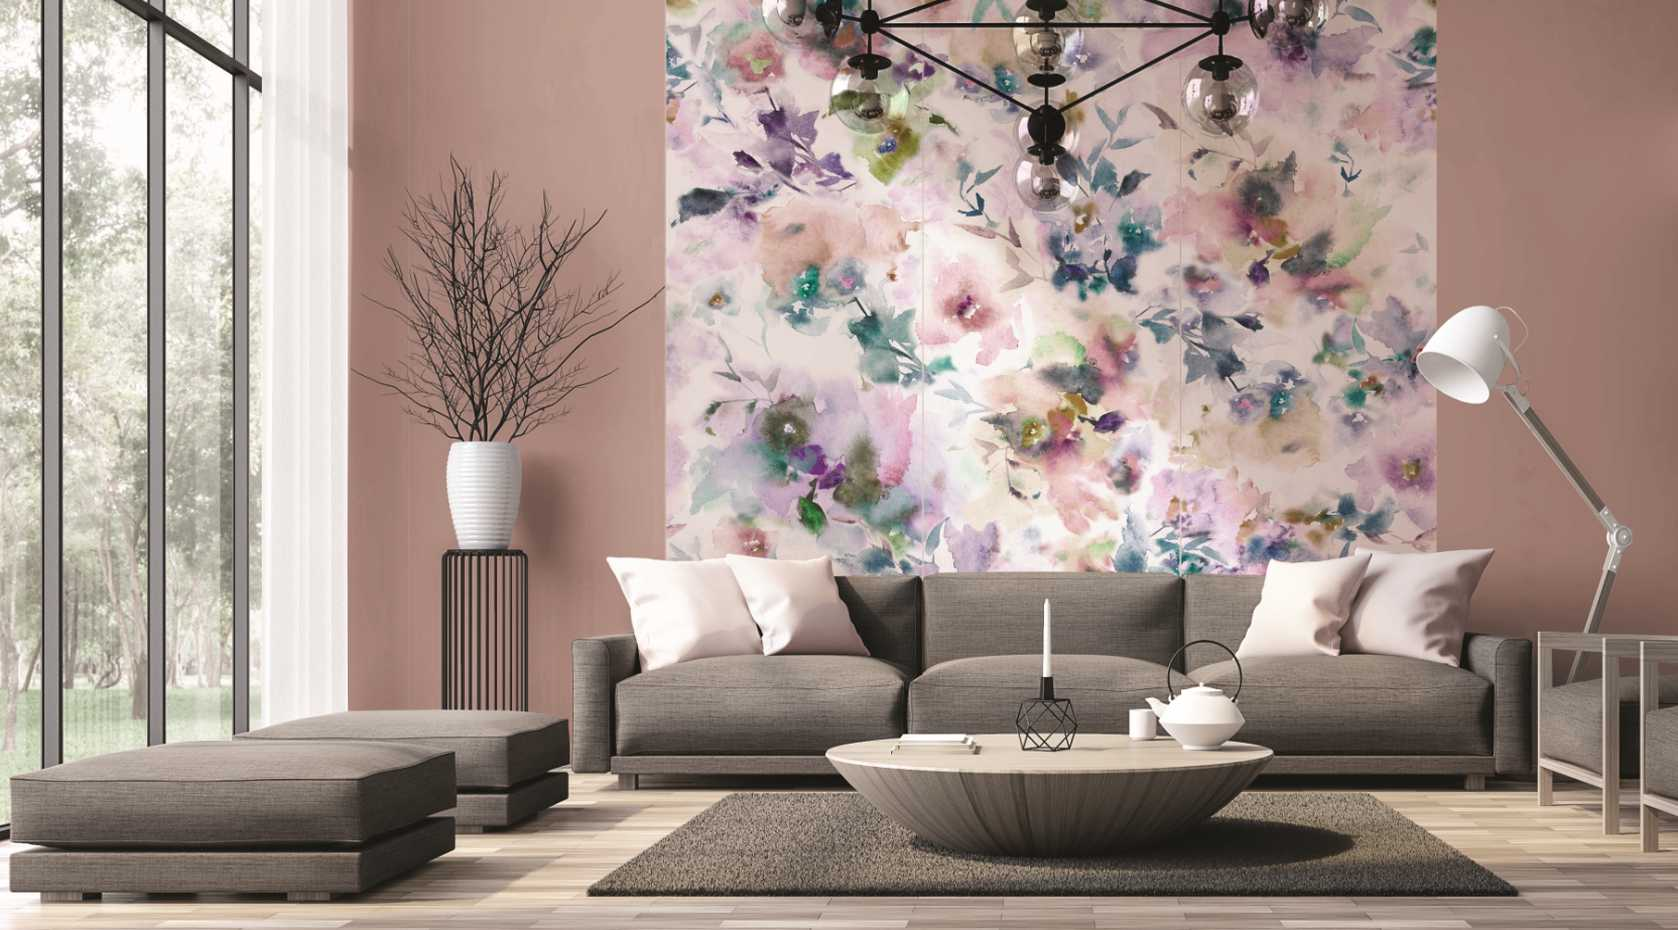 I Decorativi by Fuoriformato product image 2